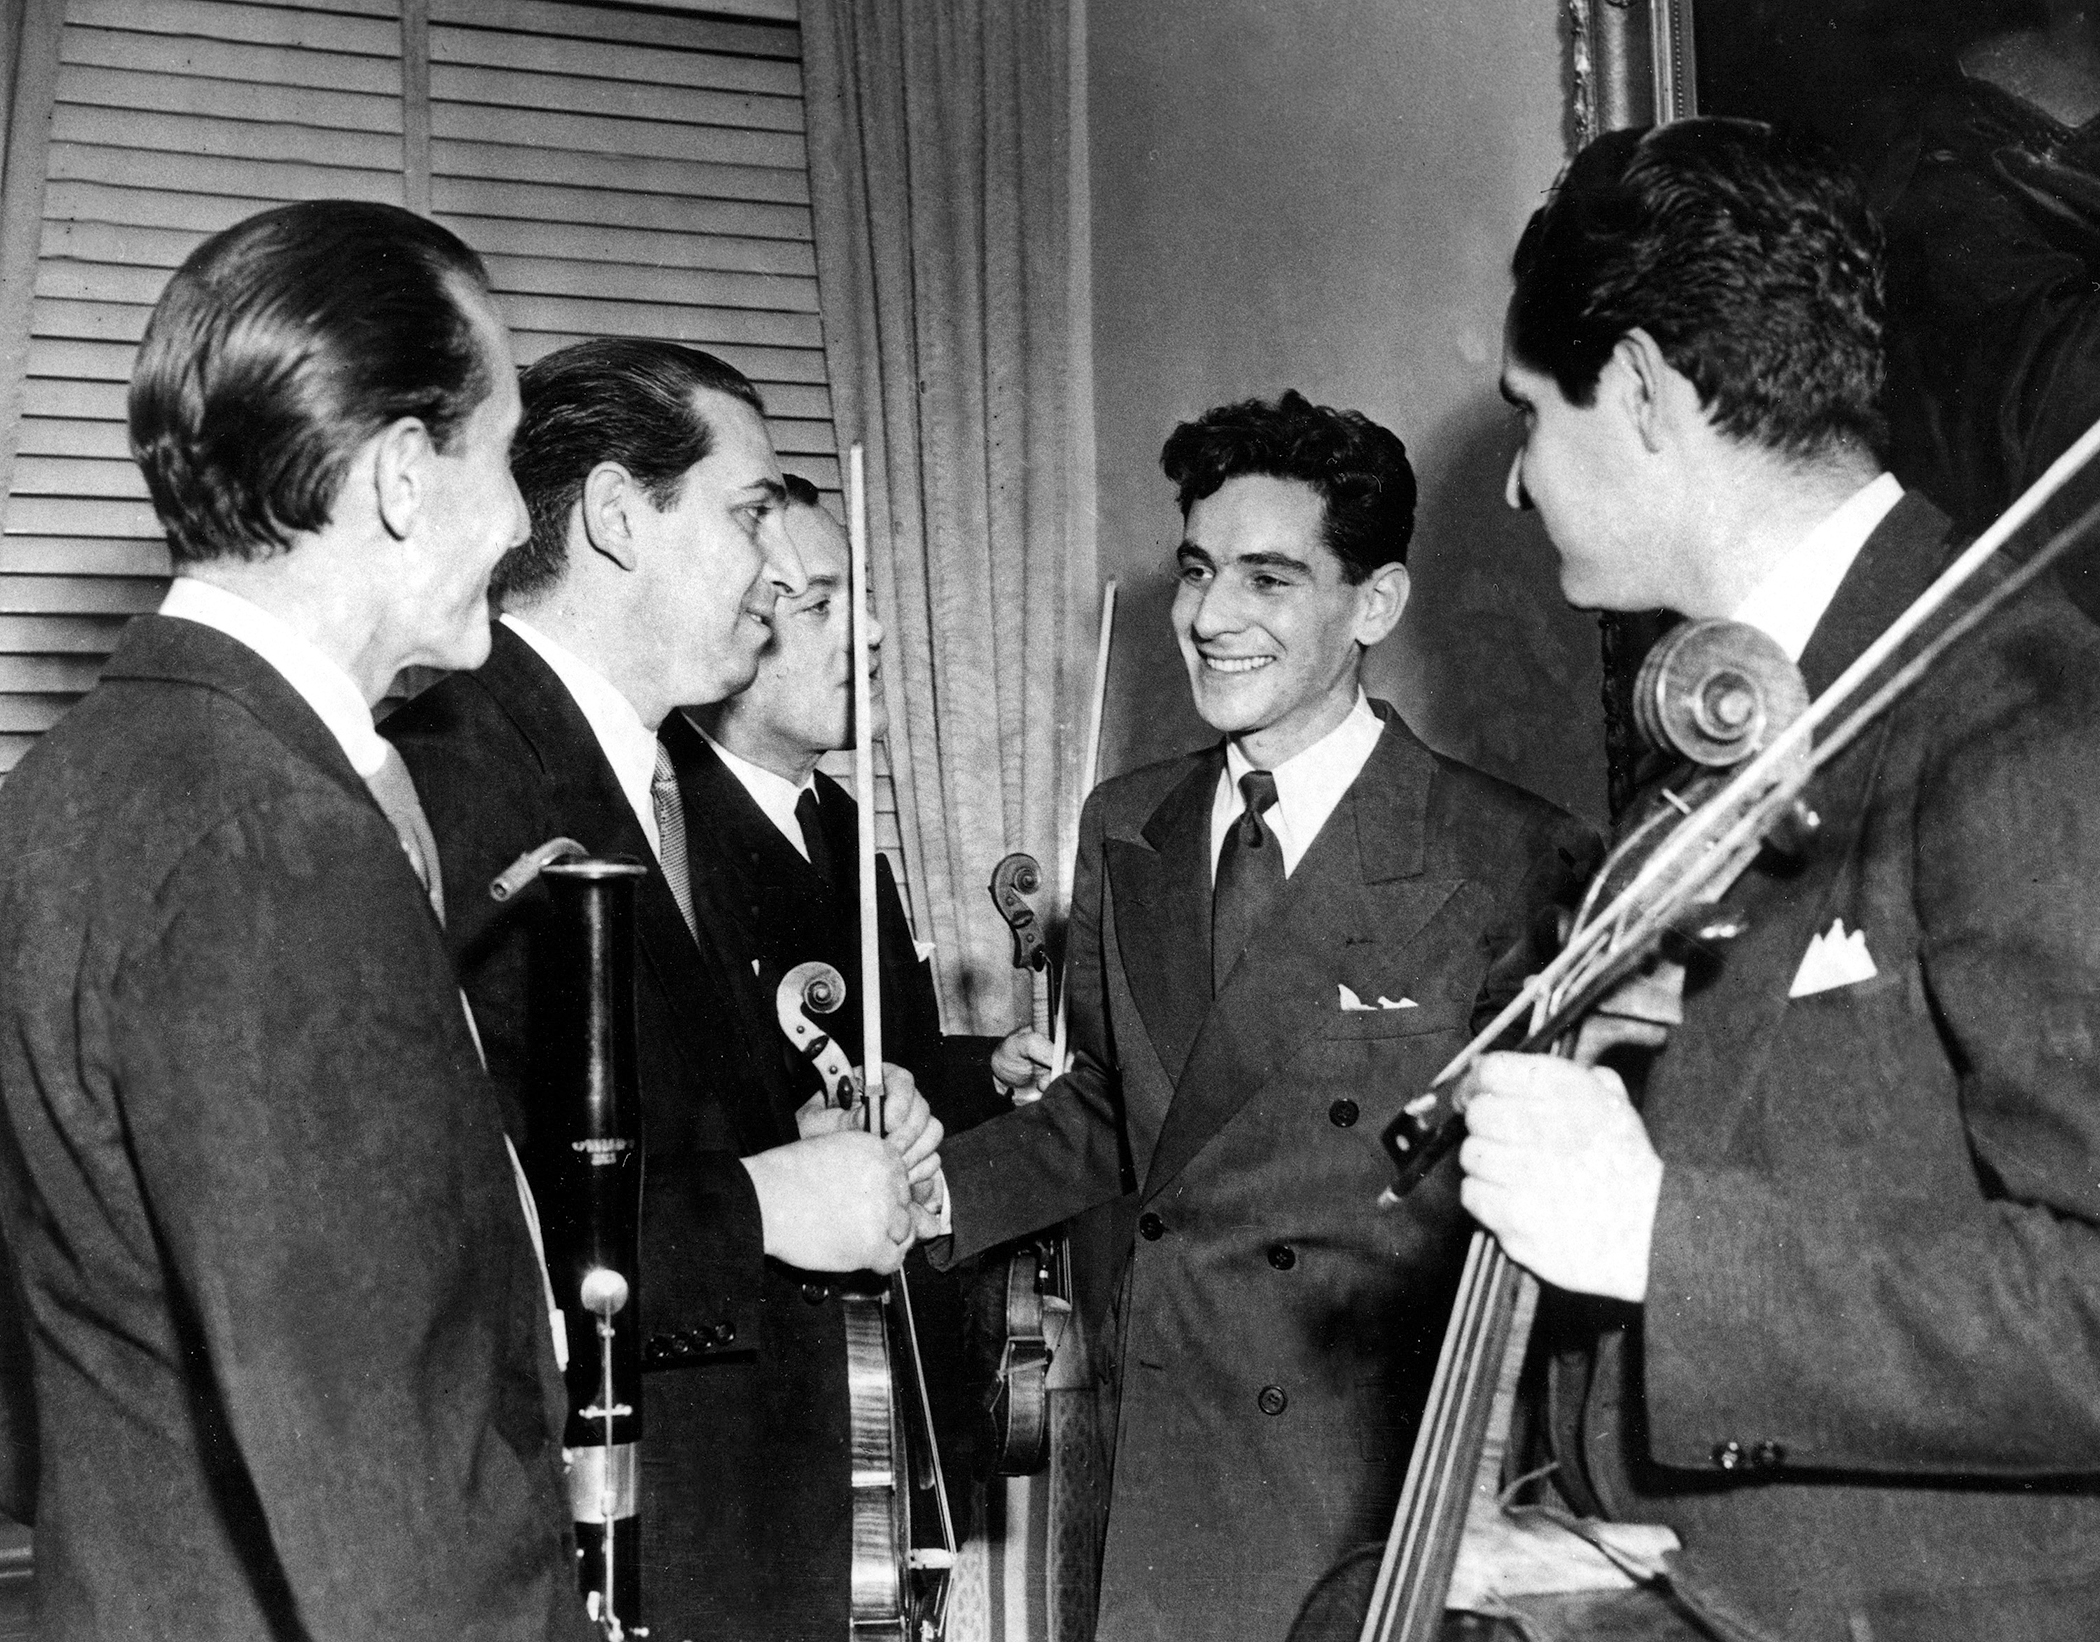 Leonard Bernstein, second from right, Assistant Conductor of the New York Philharmonic-Symphony Orchestra, is congratulated by members of the orchestra after the 25-year-old musician made his debut at Carnegie Hall in New York, Nov. 14, 1943. Bernstein substituted for Bruno Walter, who had become ill, to lead the organization in a 90-minute national radio broadcast.